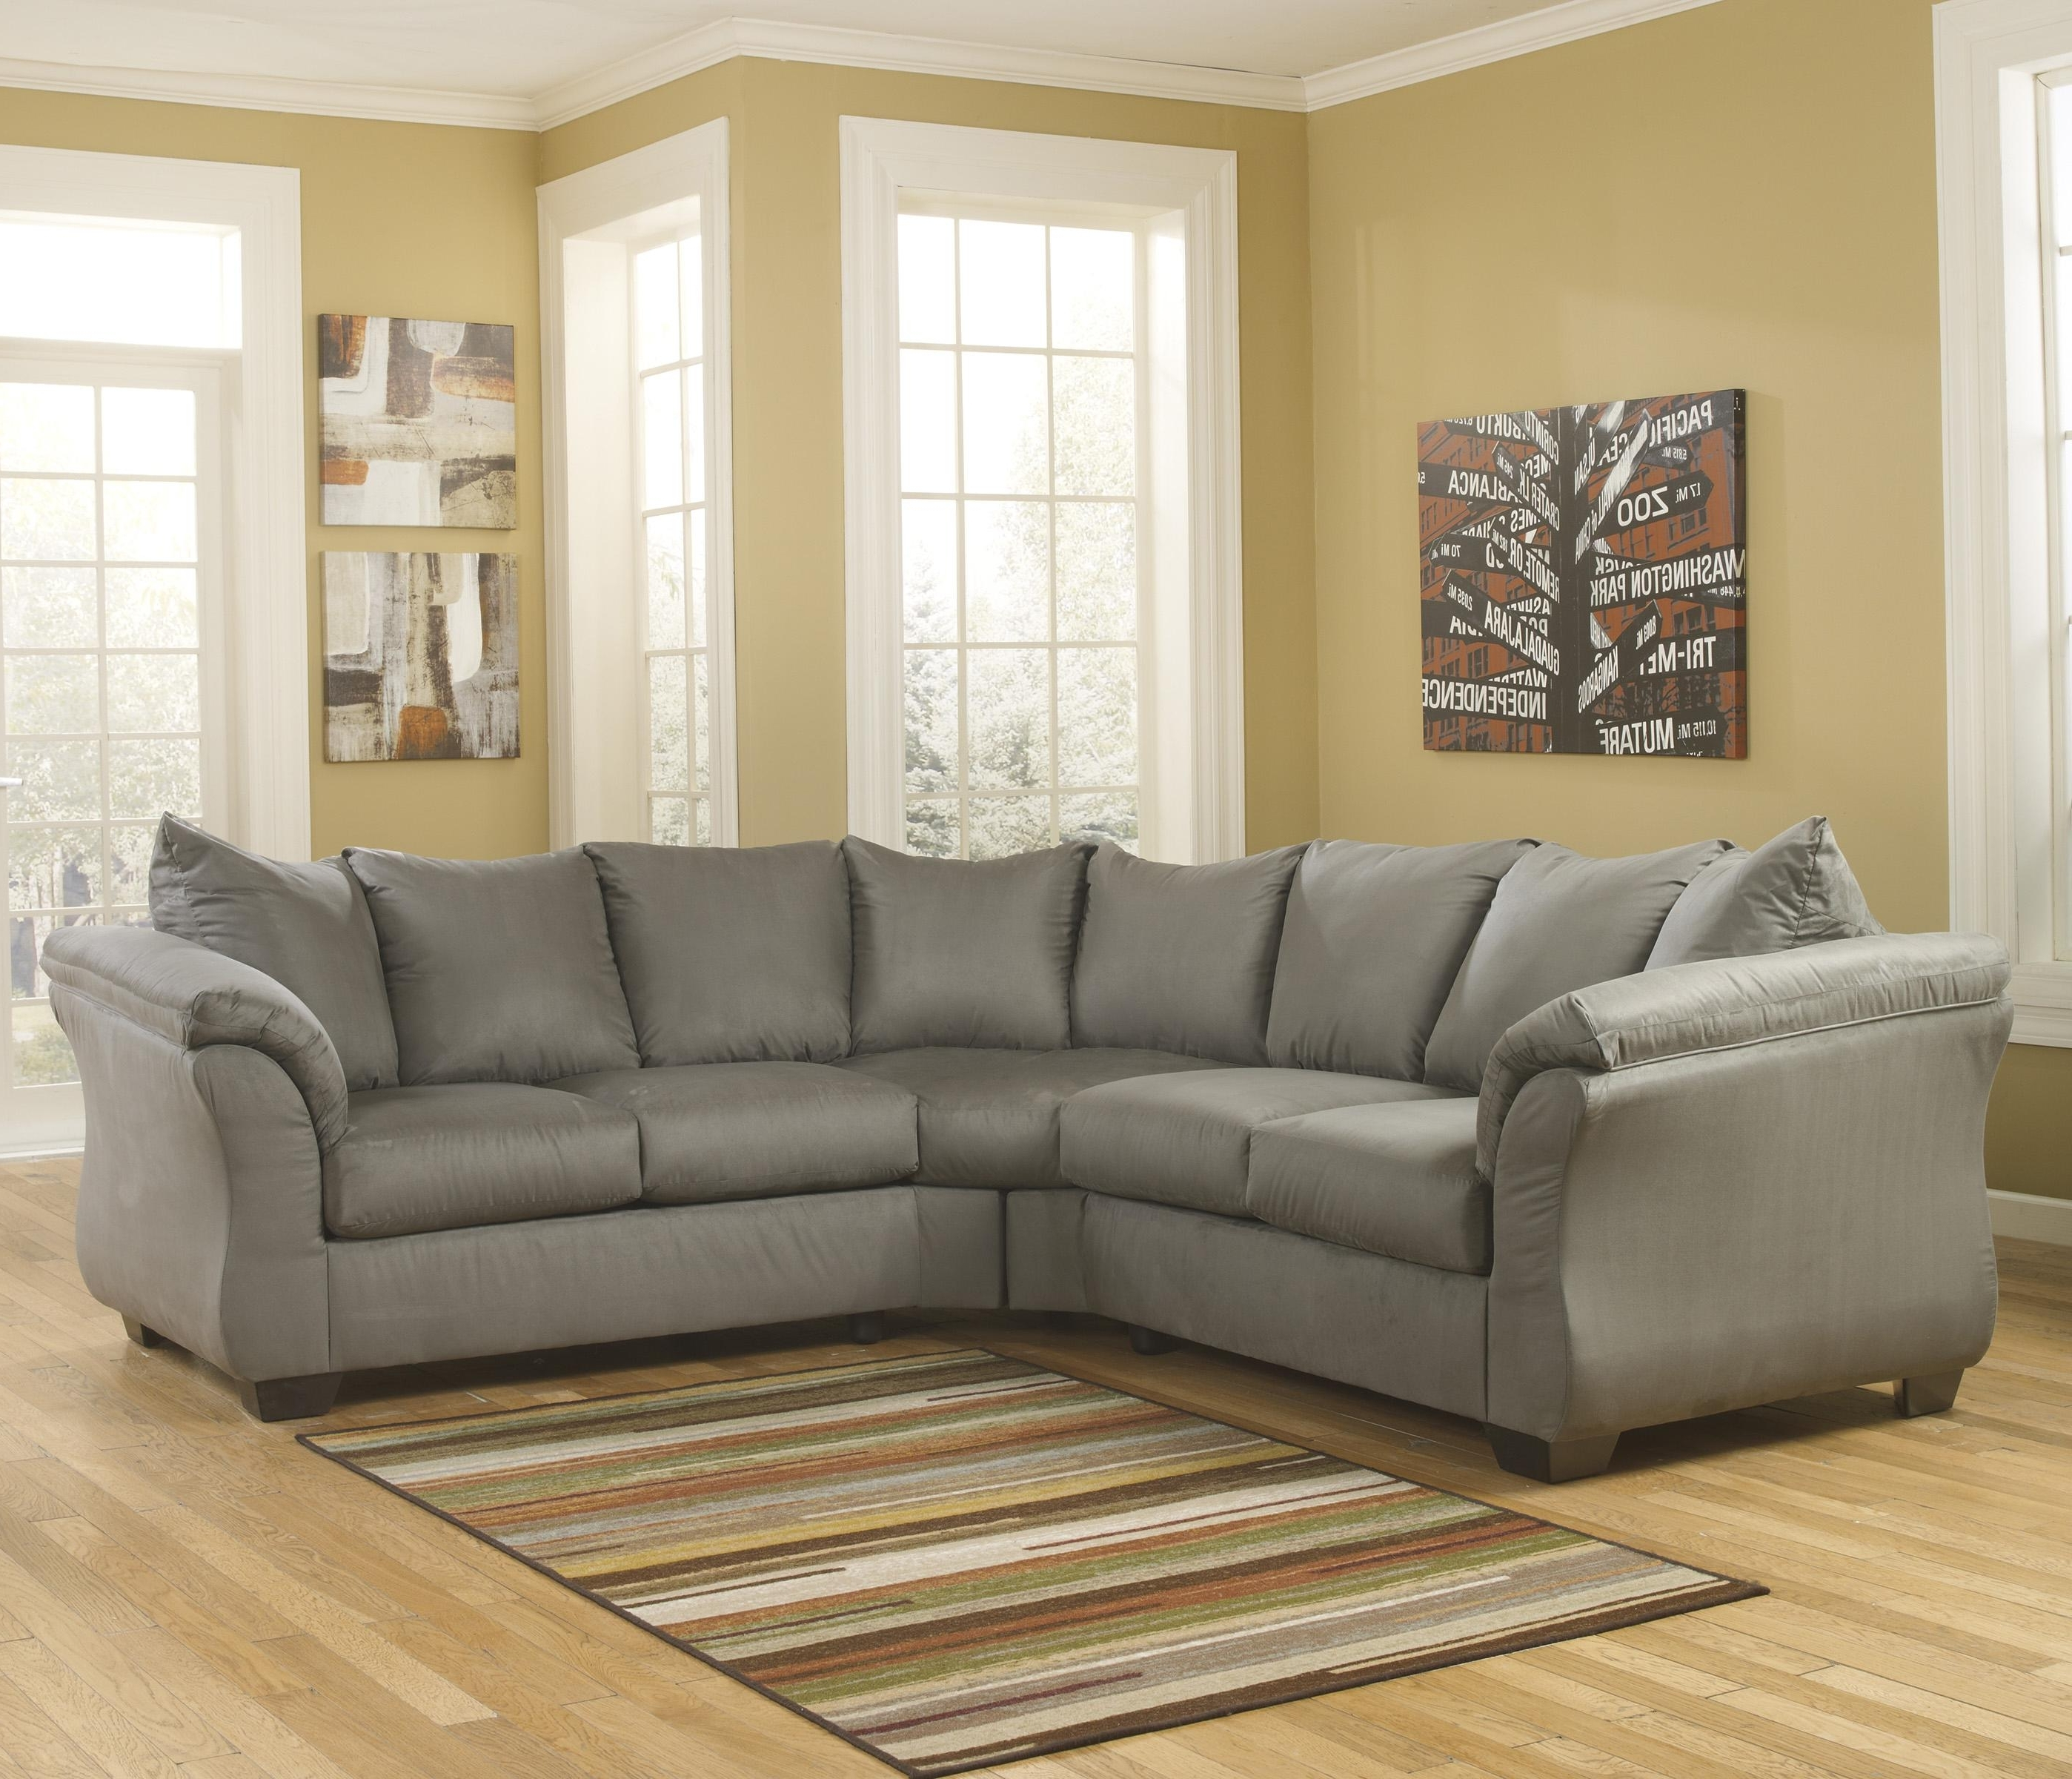 Eau Claire Wi Sectional Sofas Inside Well Liked Darcy – Cobblestone Sectional Sofasignature Designashley (View 1 of 20)